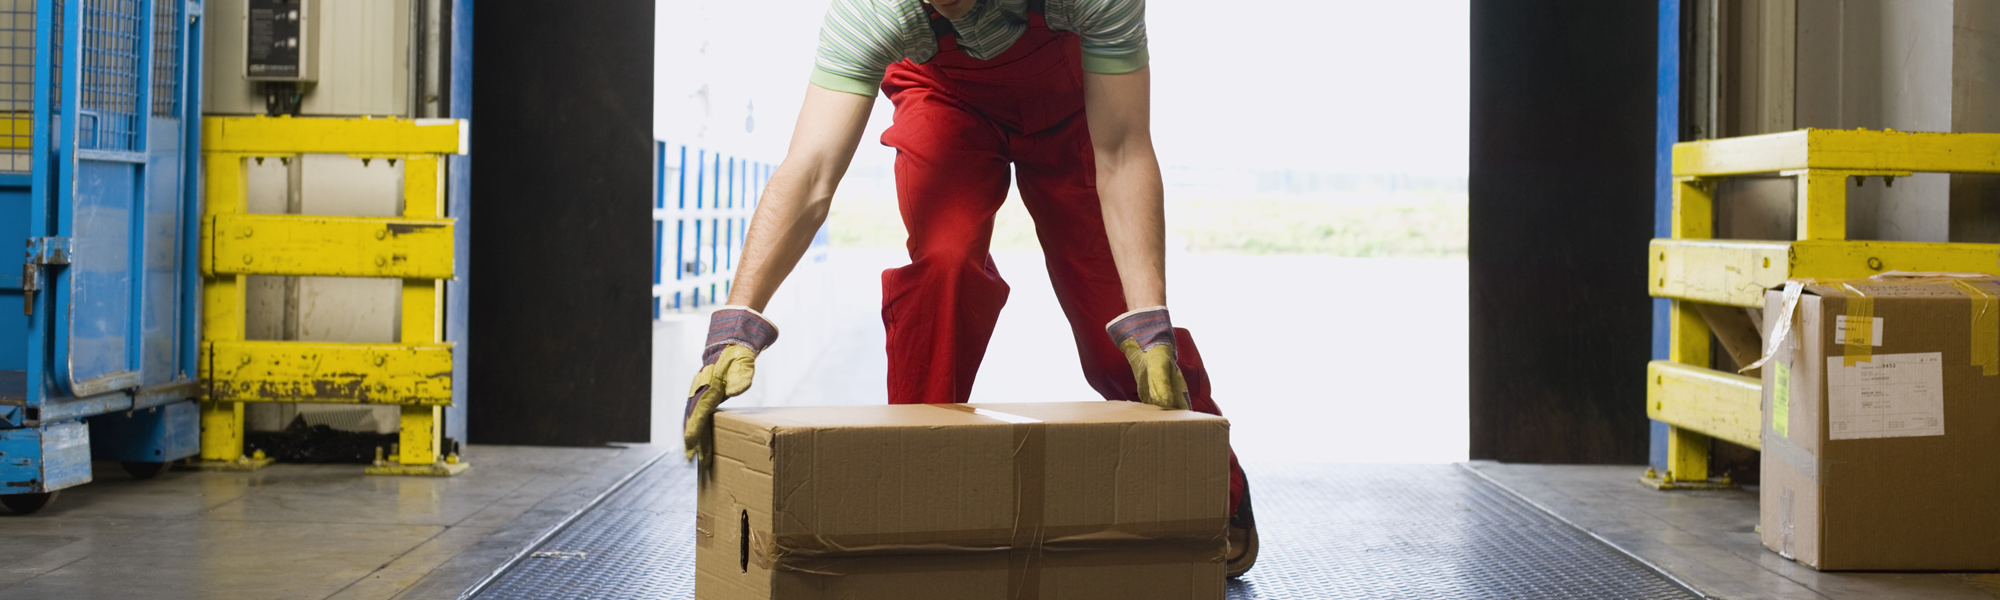 Worker preparing to lift box in warehouse